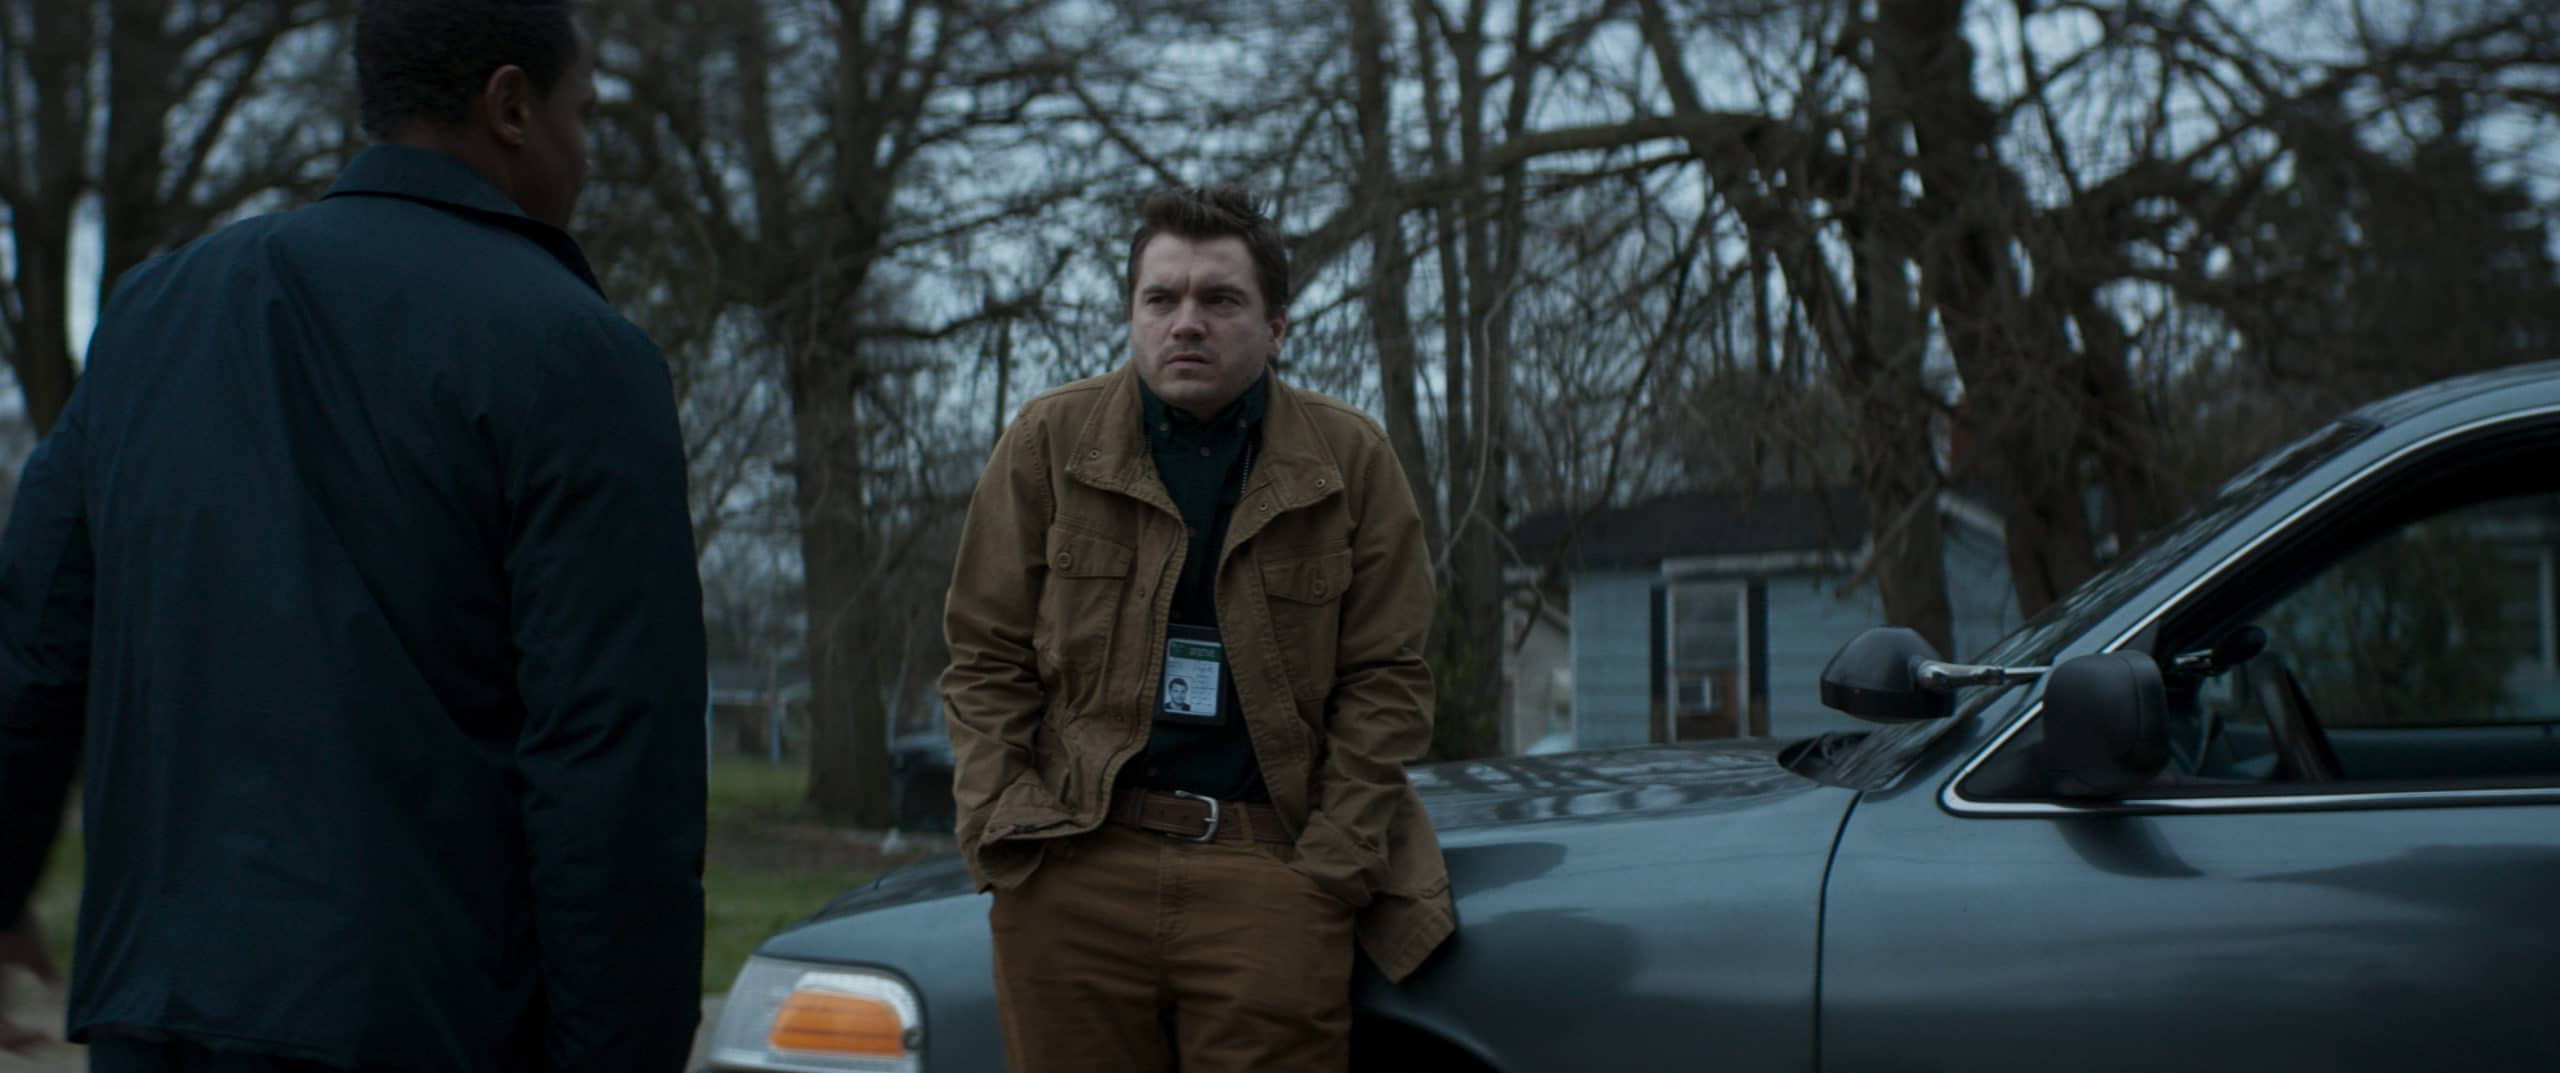 Emile Hirsch as Paul in the horror film SON, a RLJE Films/Shudder release. Photo courtesy of RLJE Films and Shudder.